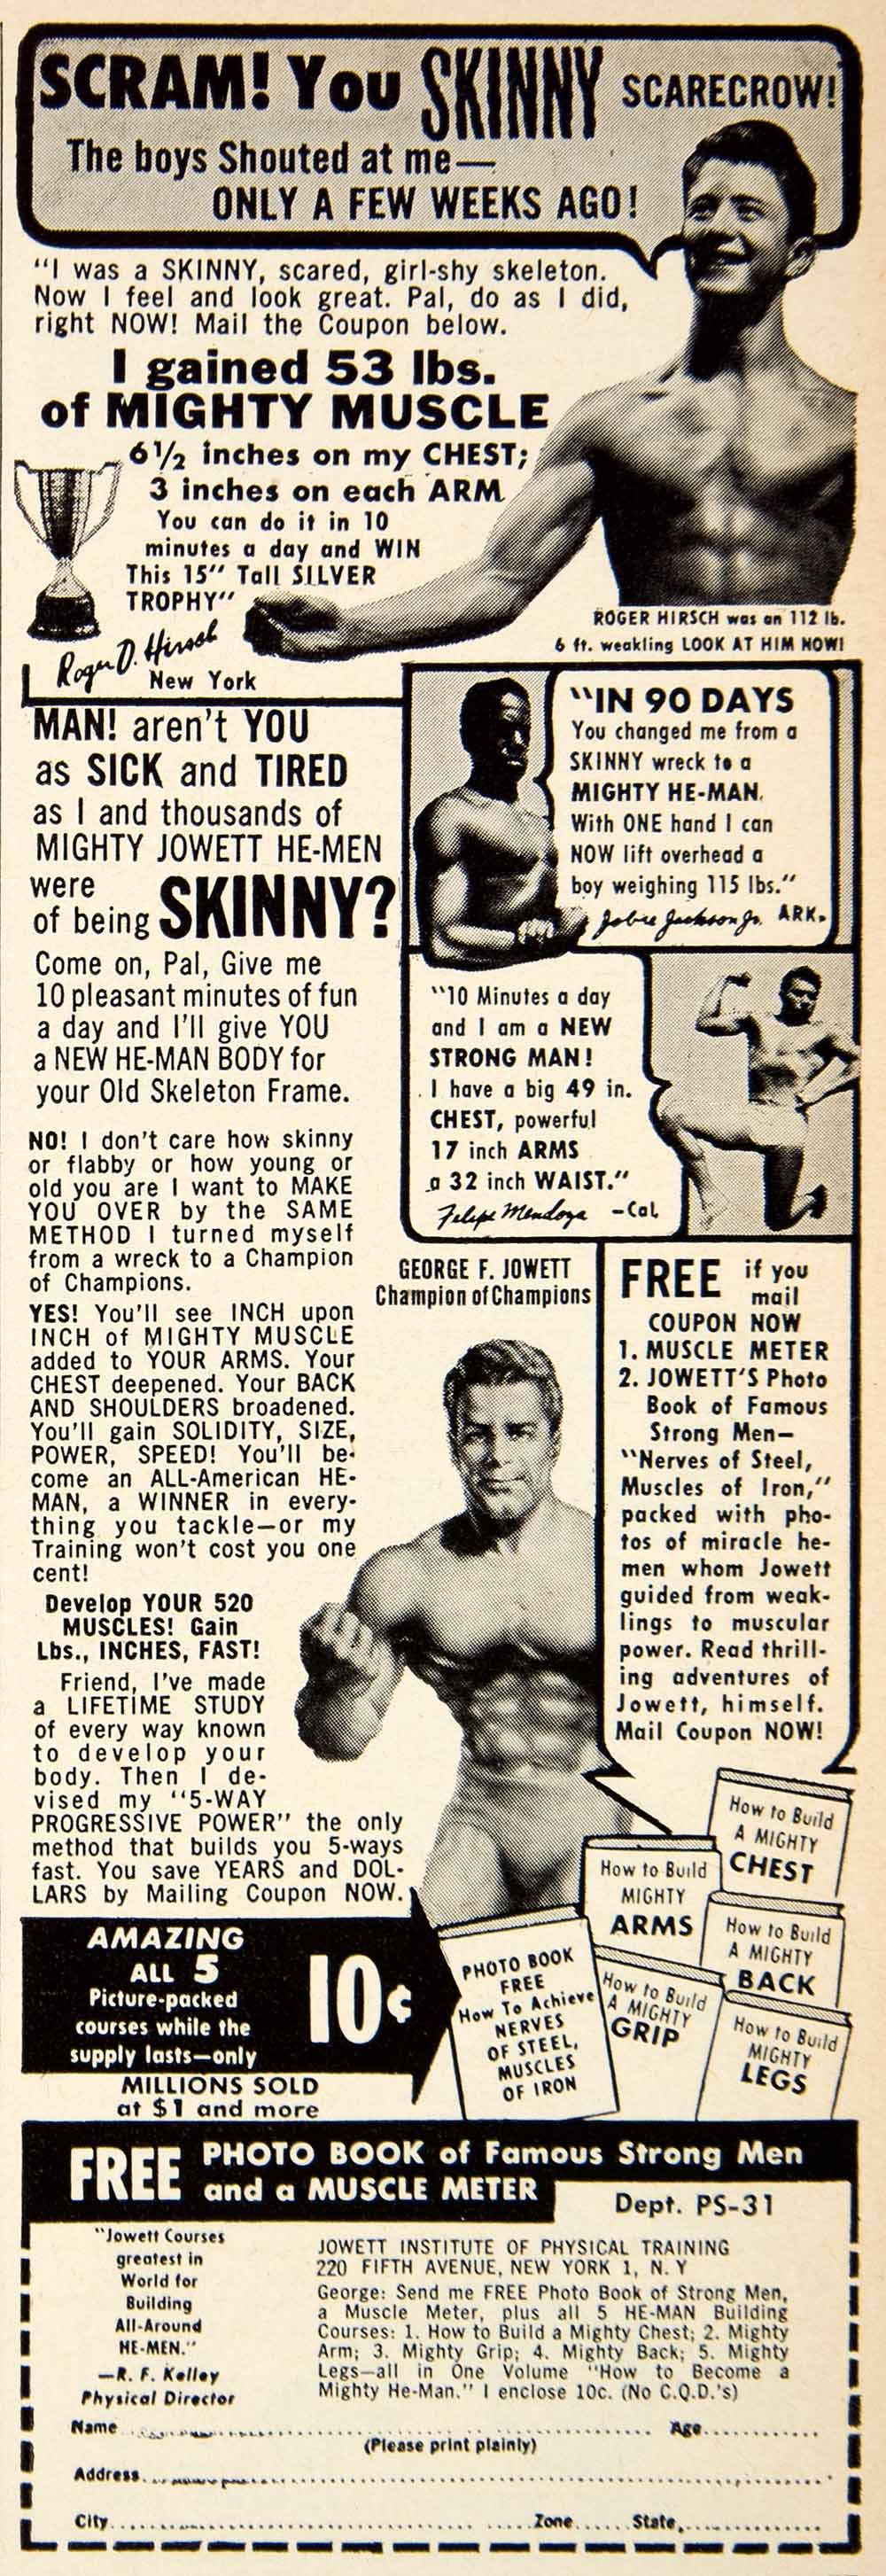 1953 Ad Jowett Institute Physical Training 220 Fifth Avenue New York Body PSC2